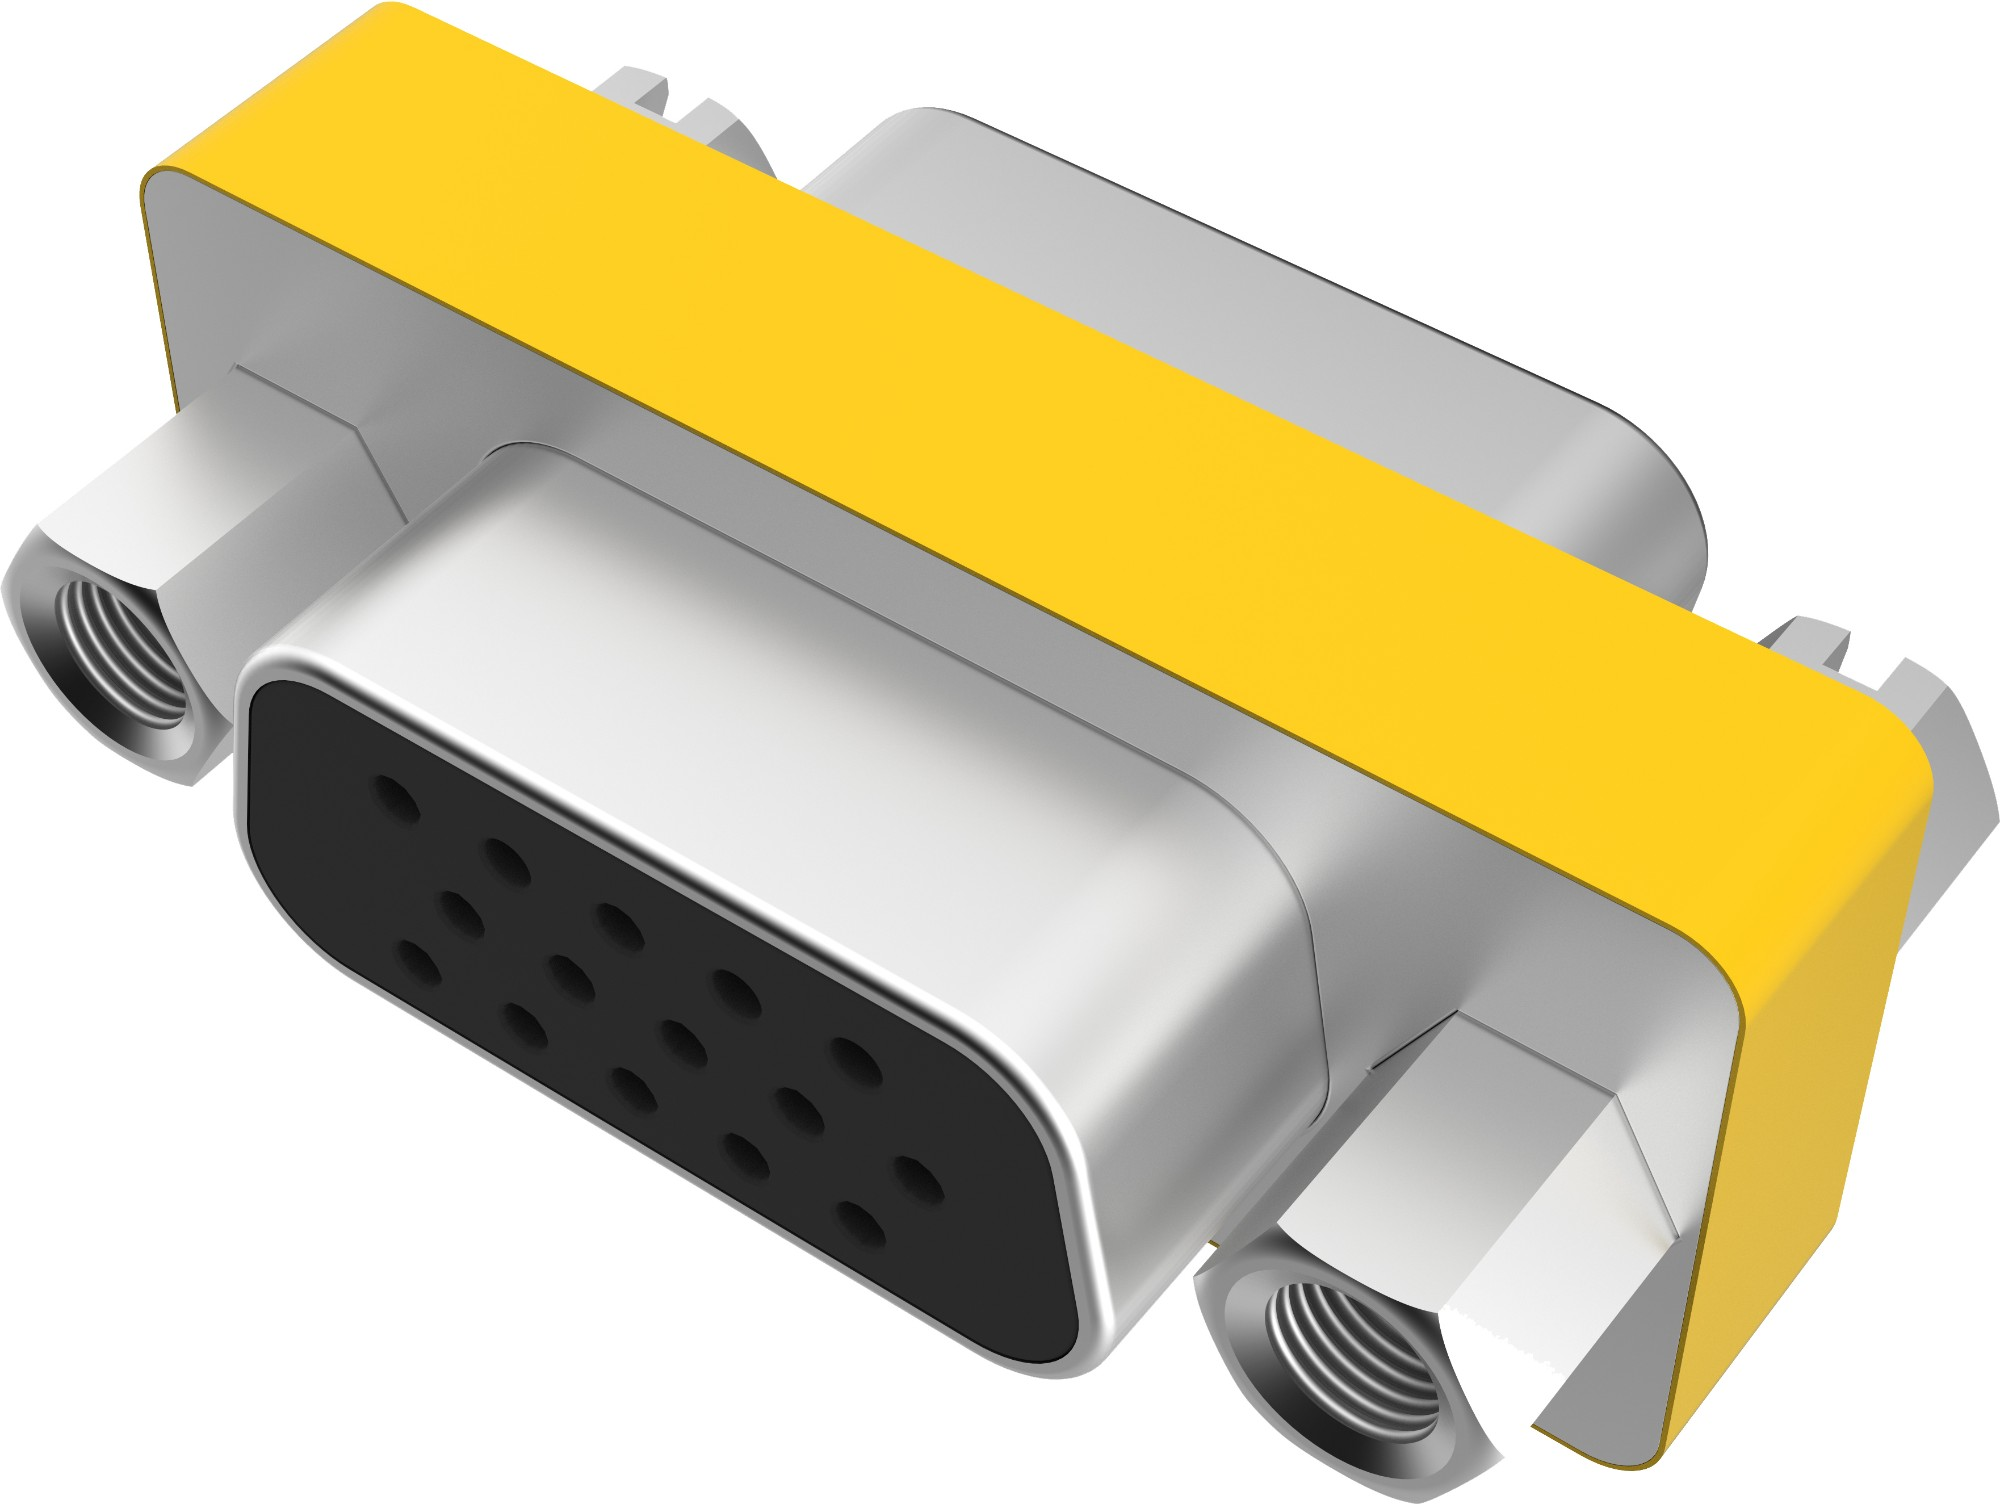 Vision TC-VGAFF cable interface/gender adapter VGA Metallic,Yellow